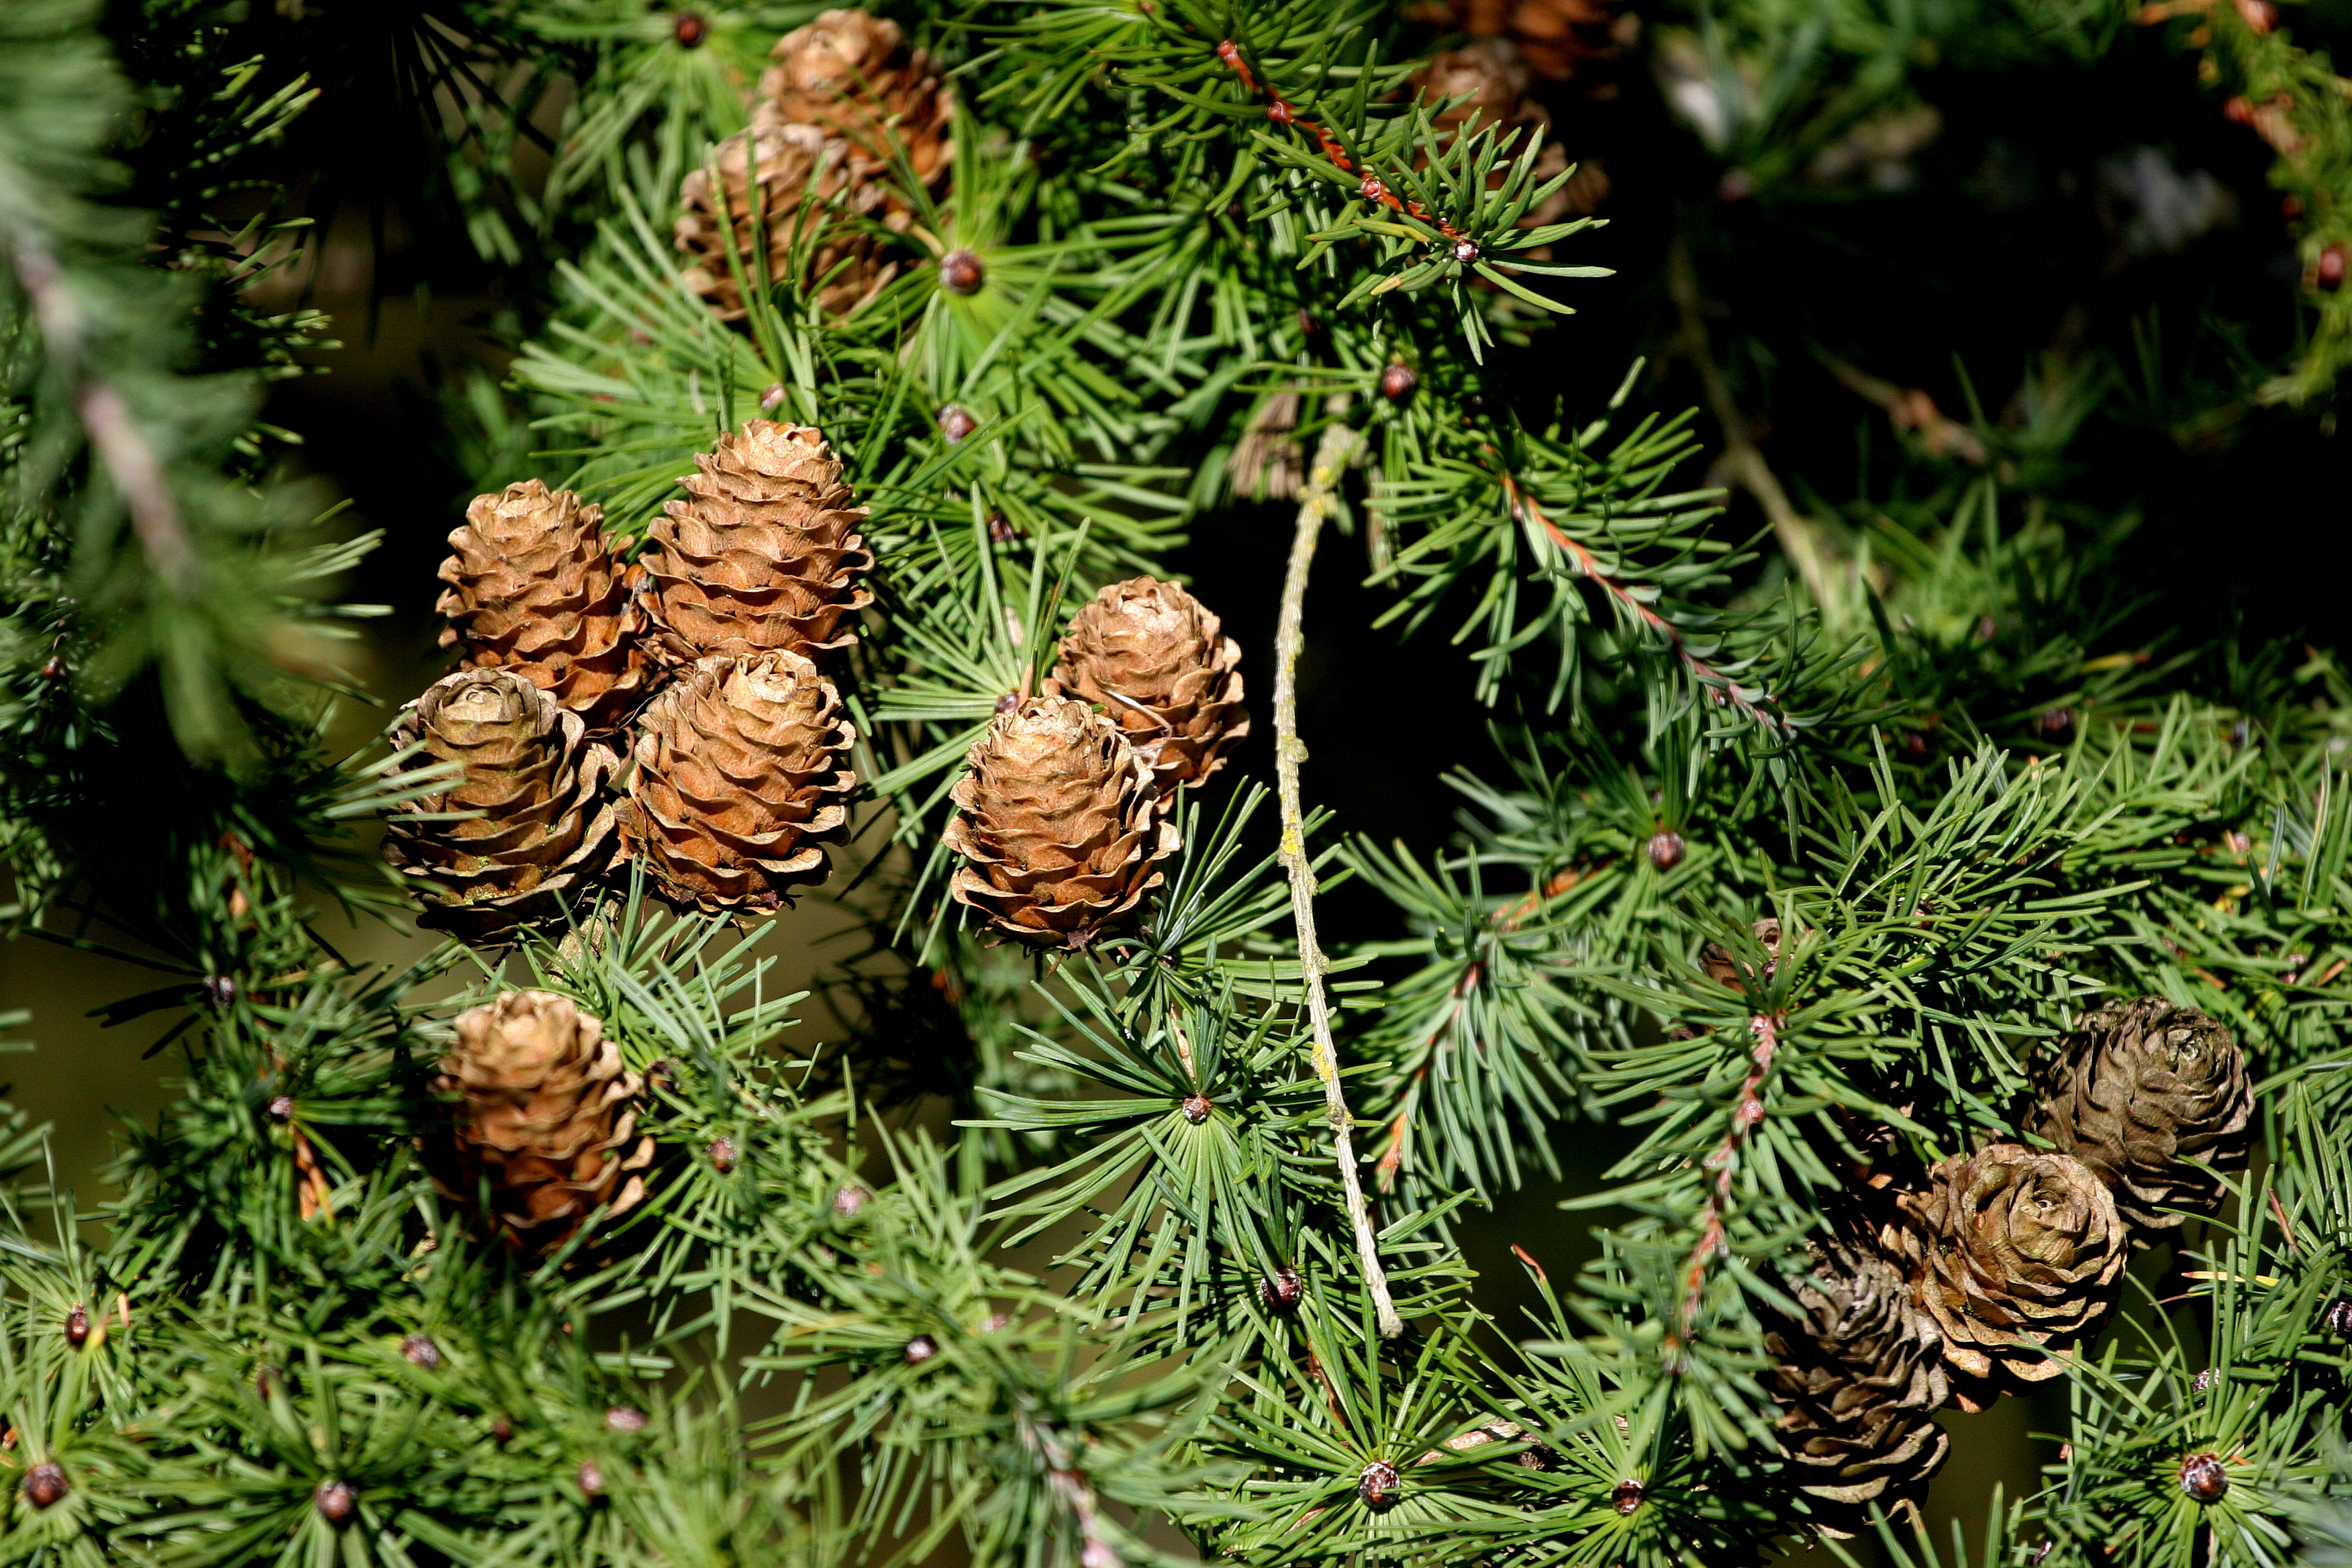 High production levels followed by pest explosion destroy pine nut culture